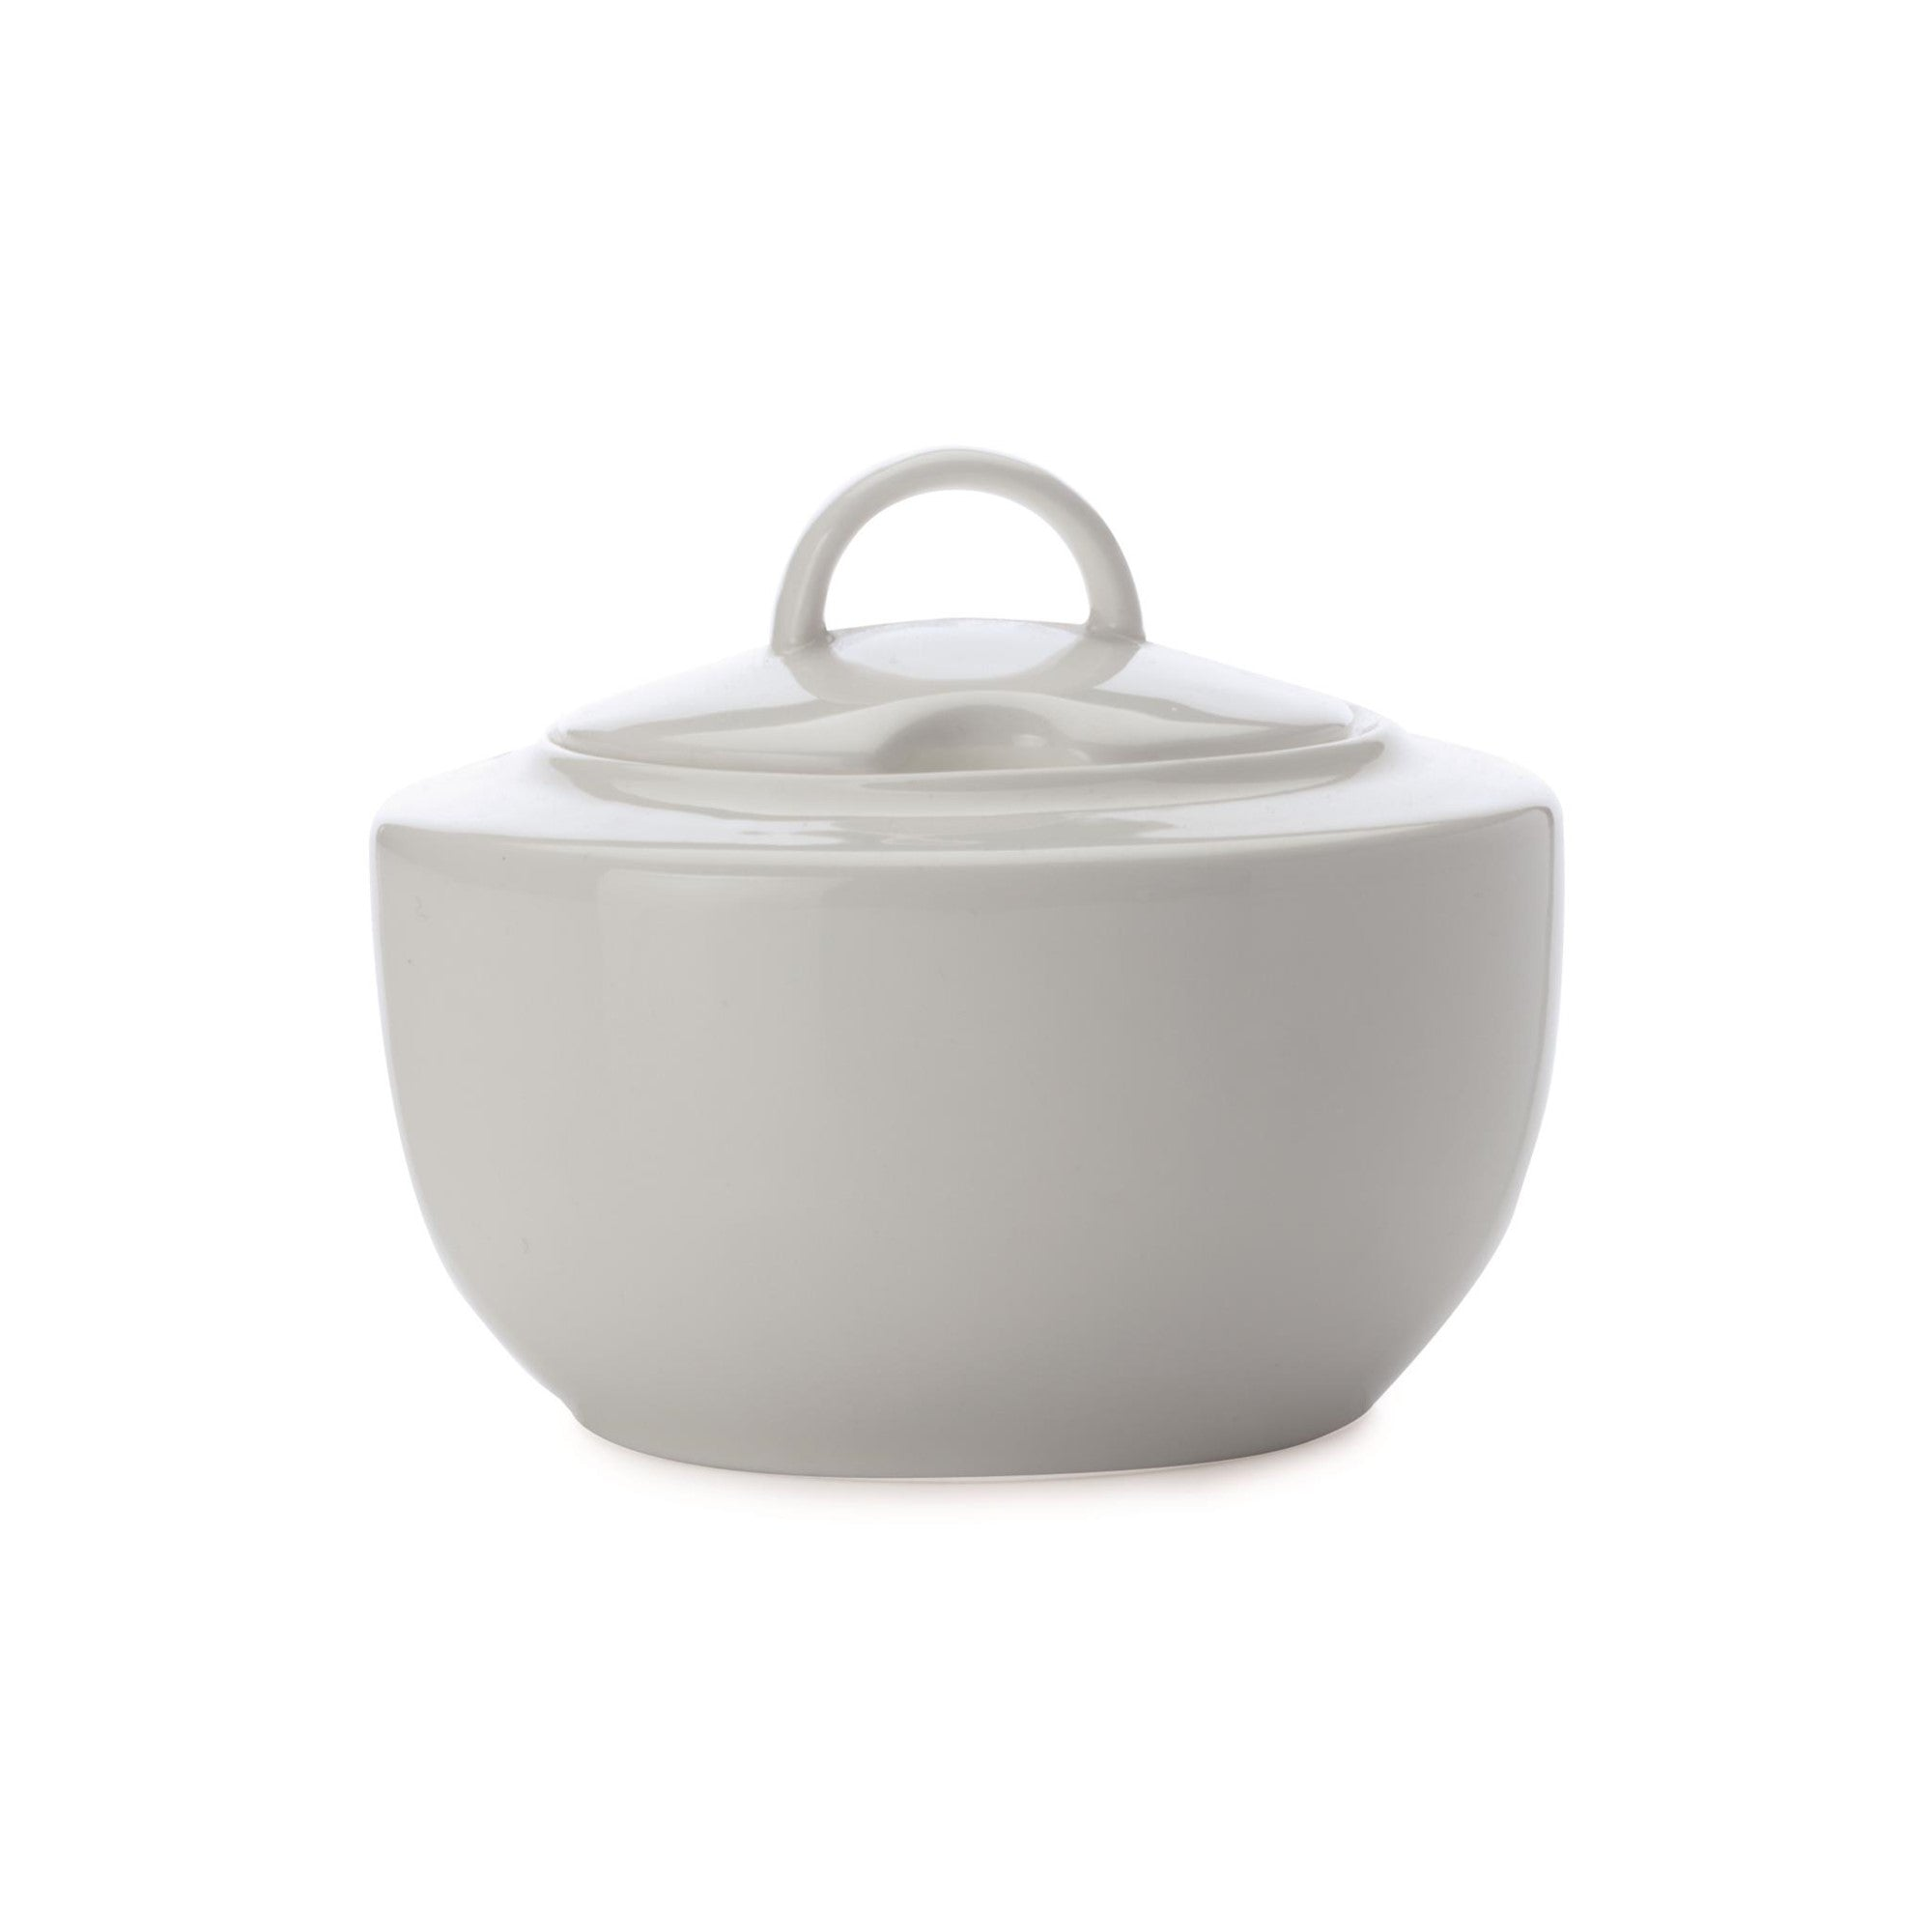 Maxwell & Williams Cashmere Coupe Sugar Bowl